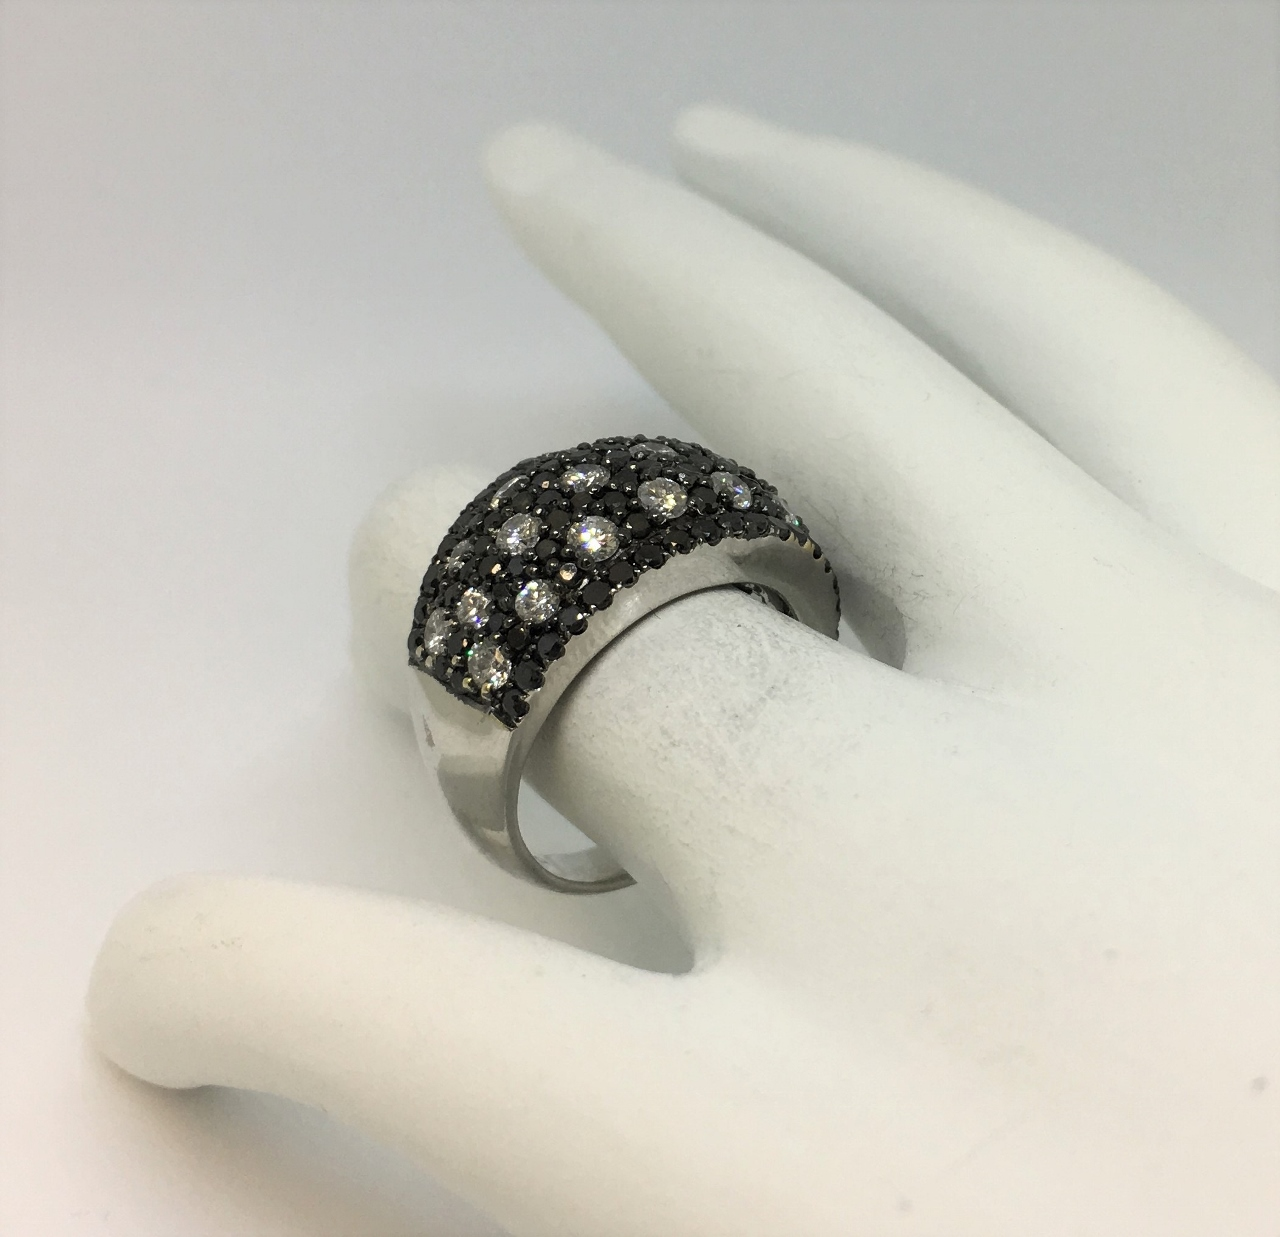 2.90 Carats Total Weight Black & White Diamond Band